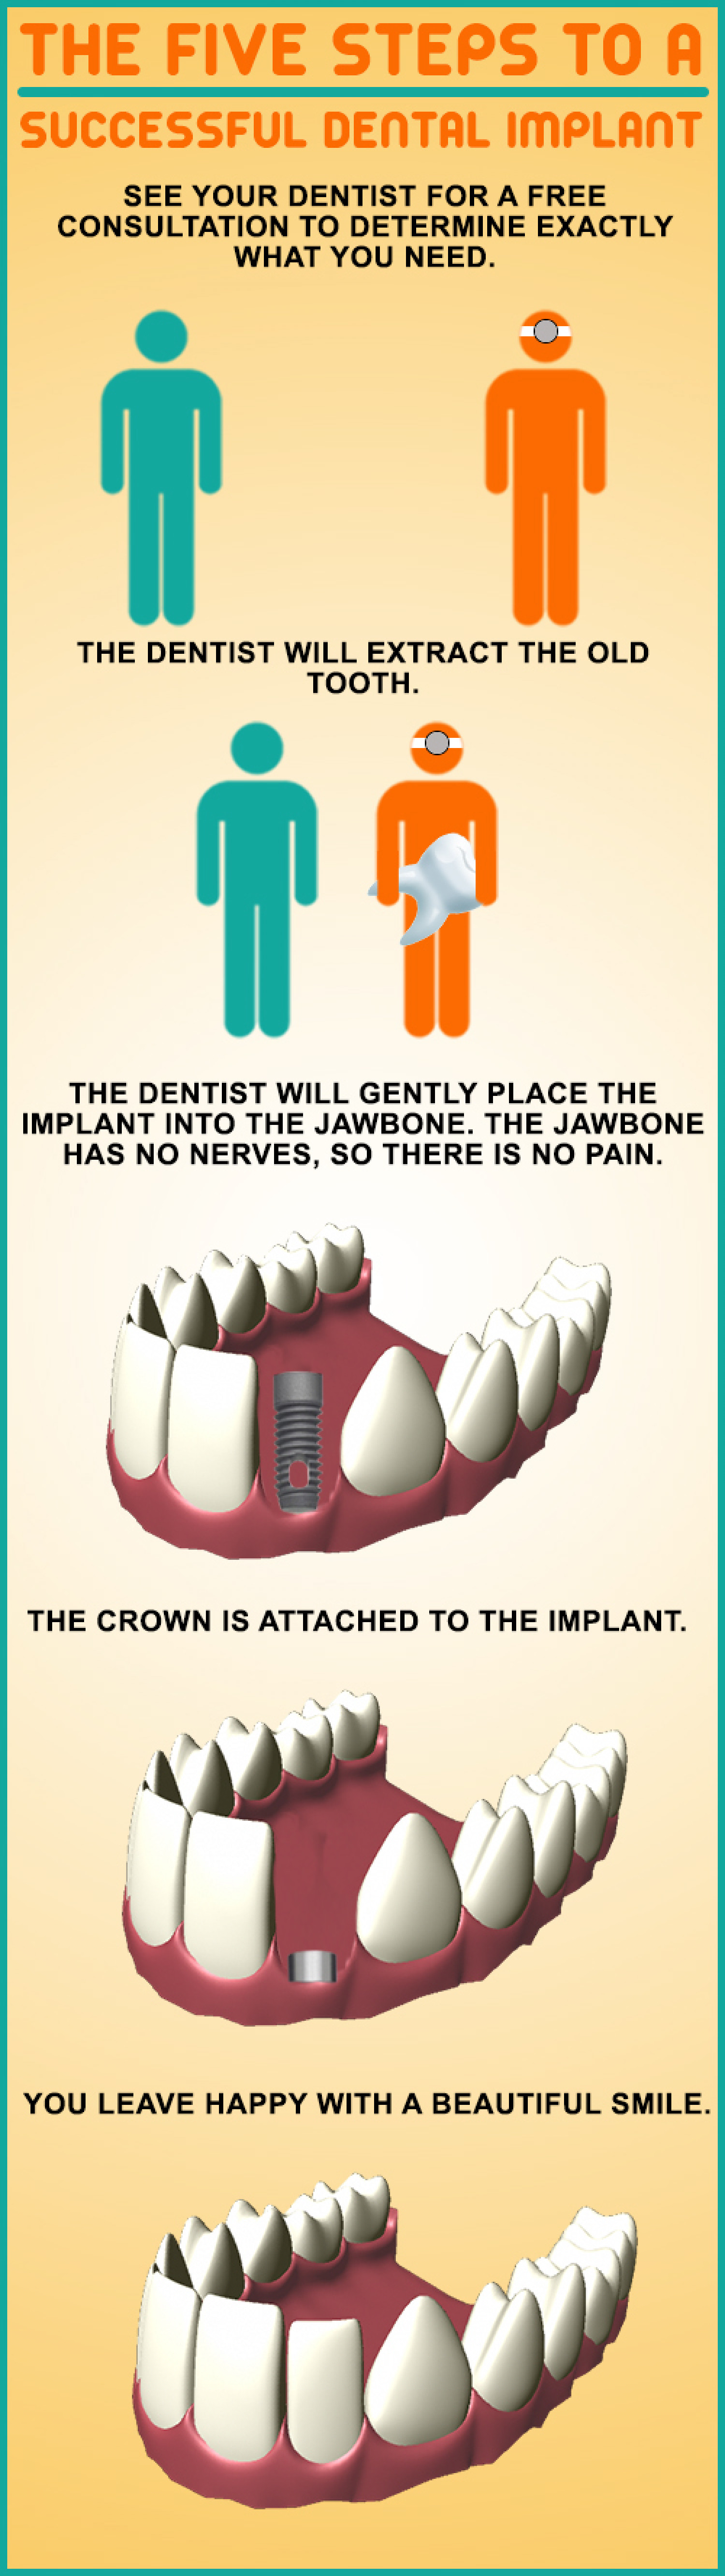 Pat Crawford DDS Explains Dental Implants Infographic